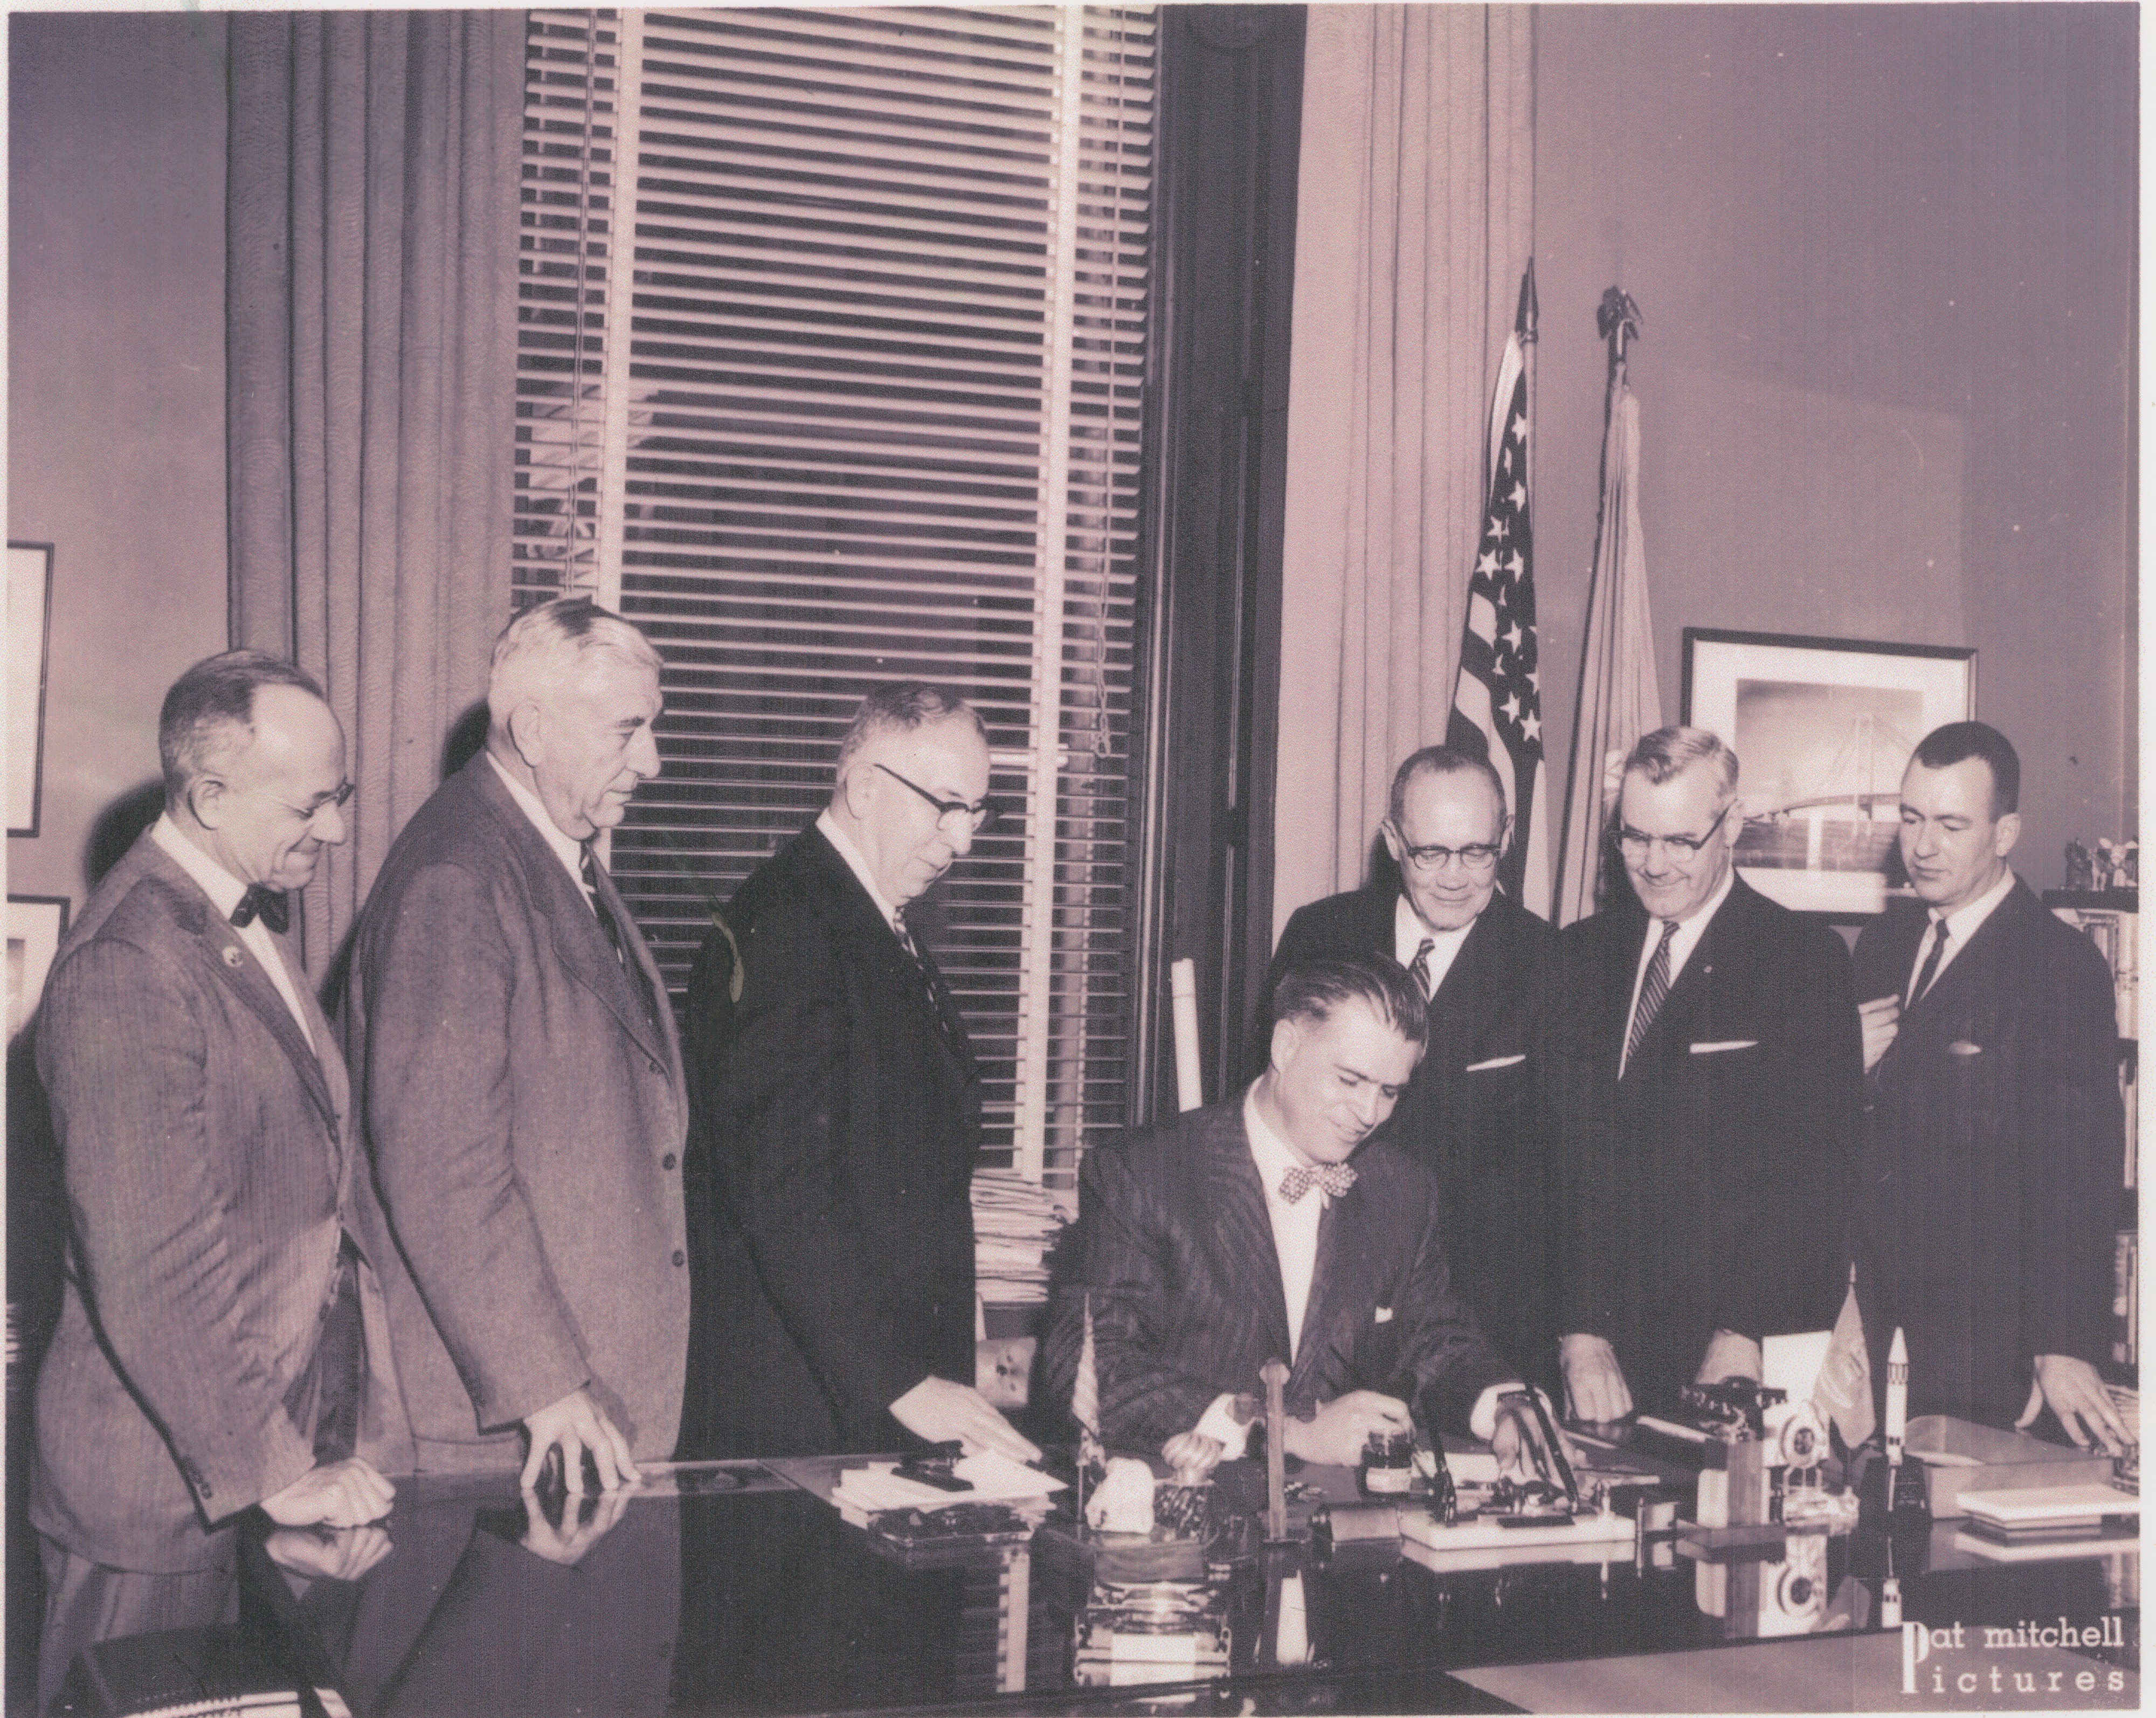 Gov. G. Mennen Williams Signs Bill Changing Eastern Michigan College to Eastern Michigan University, 1959 image